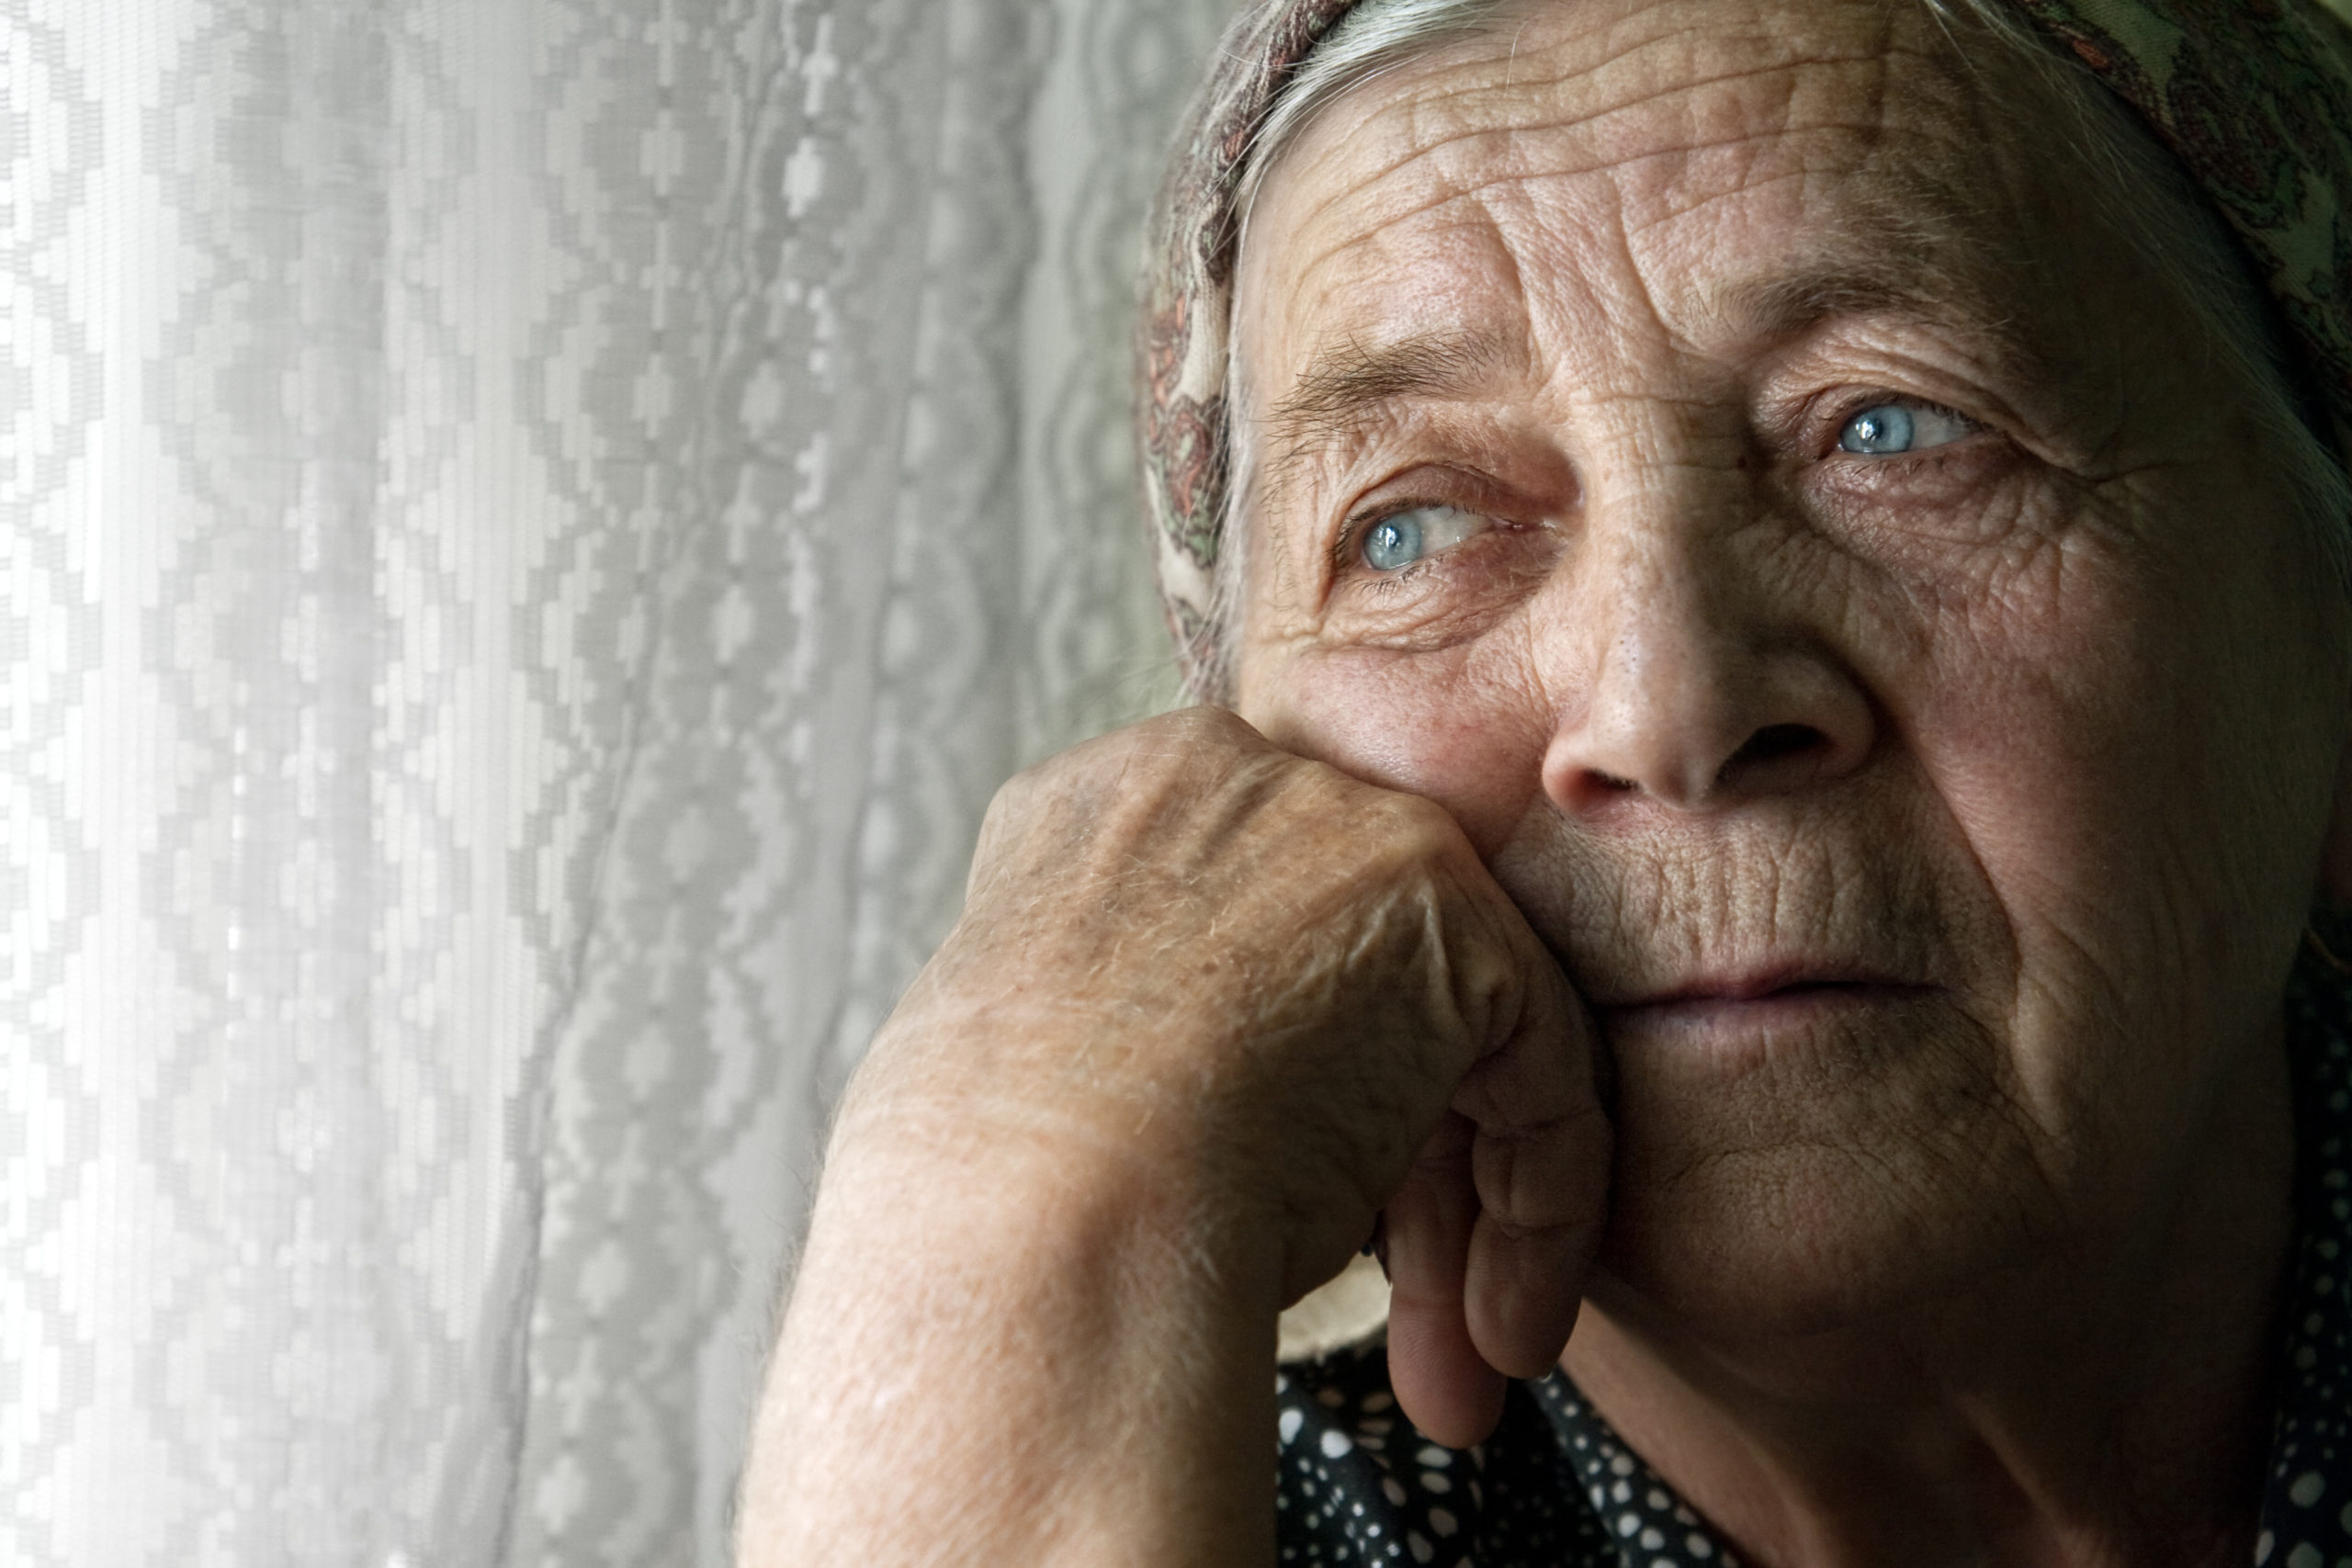 fatigue stemming from senior malnutrition